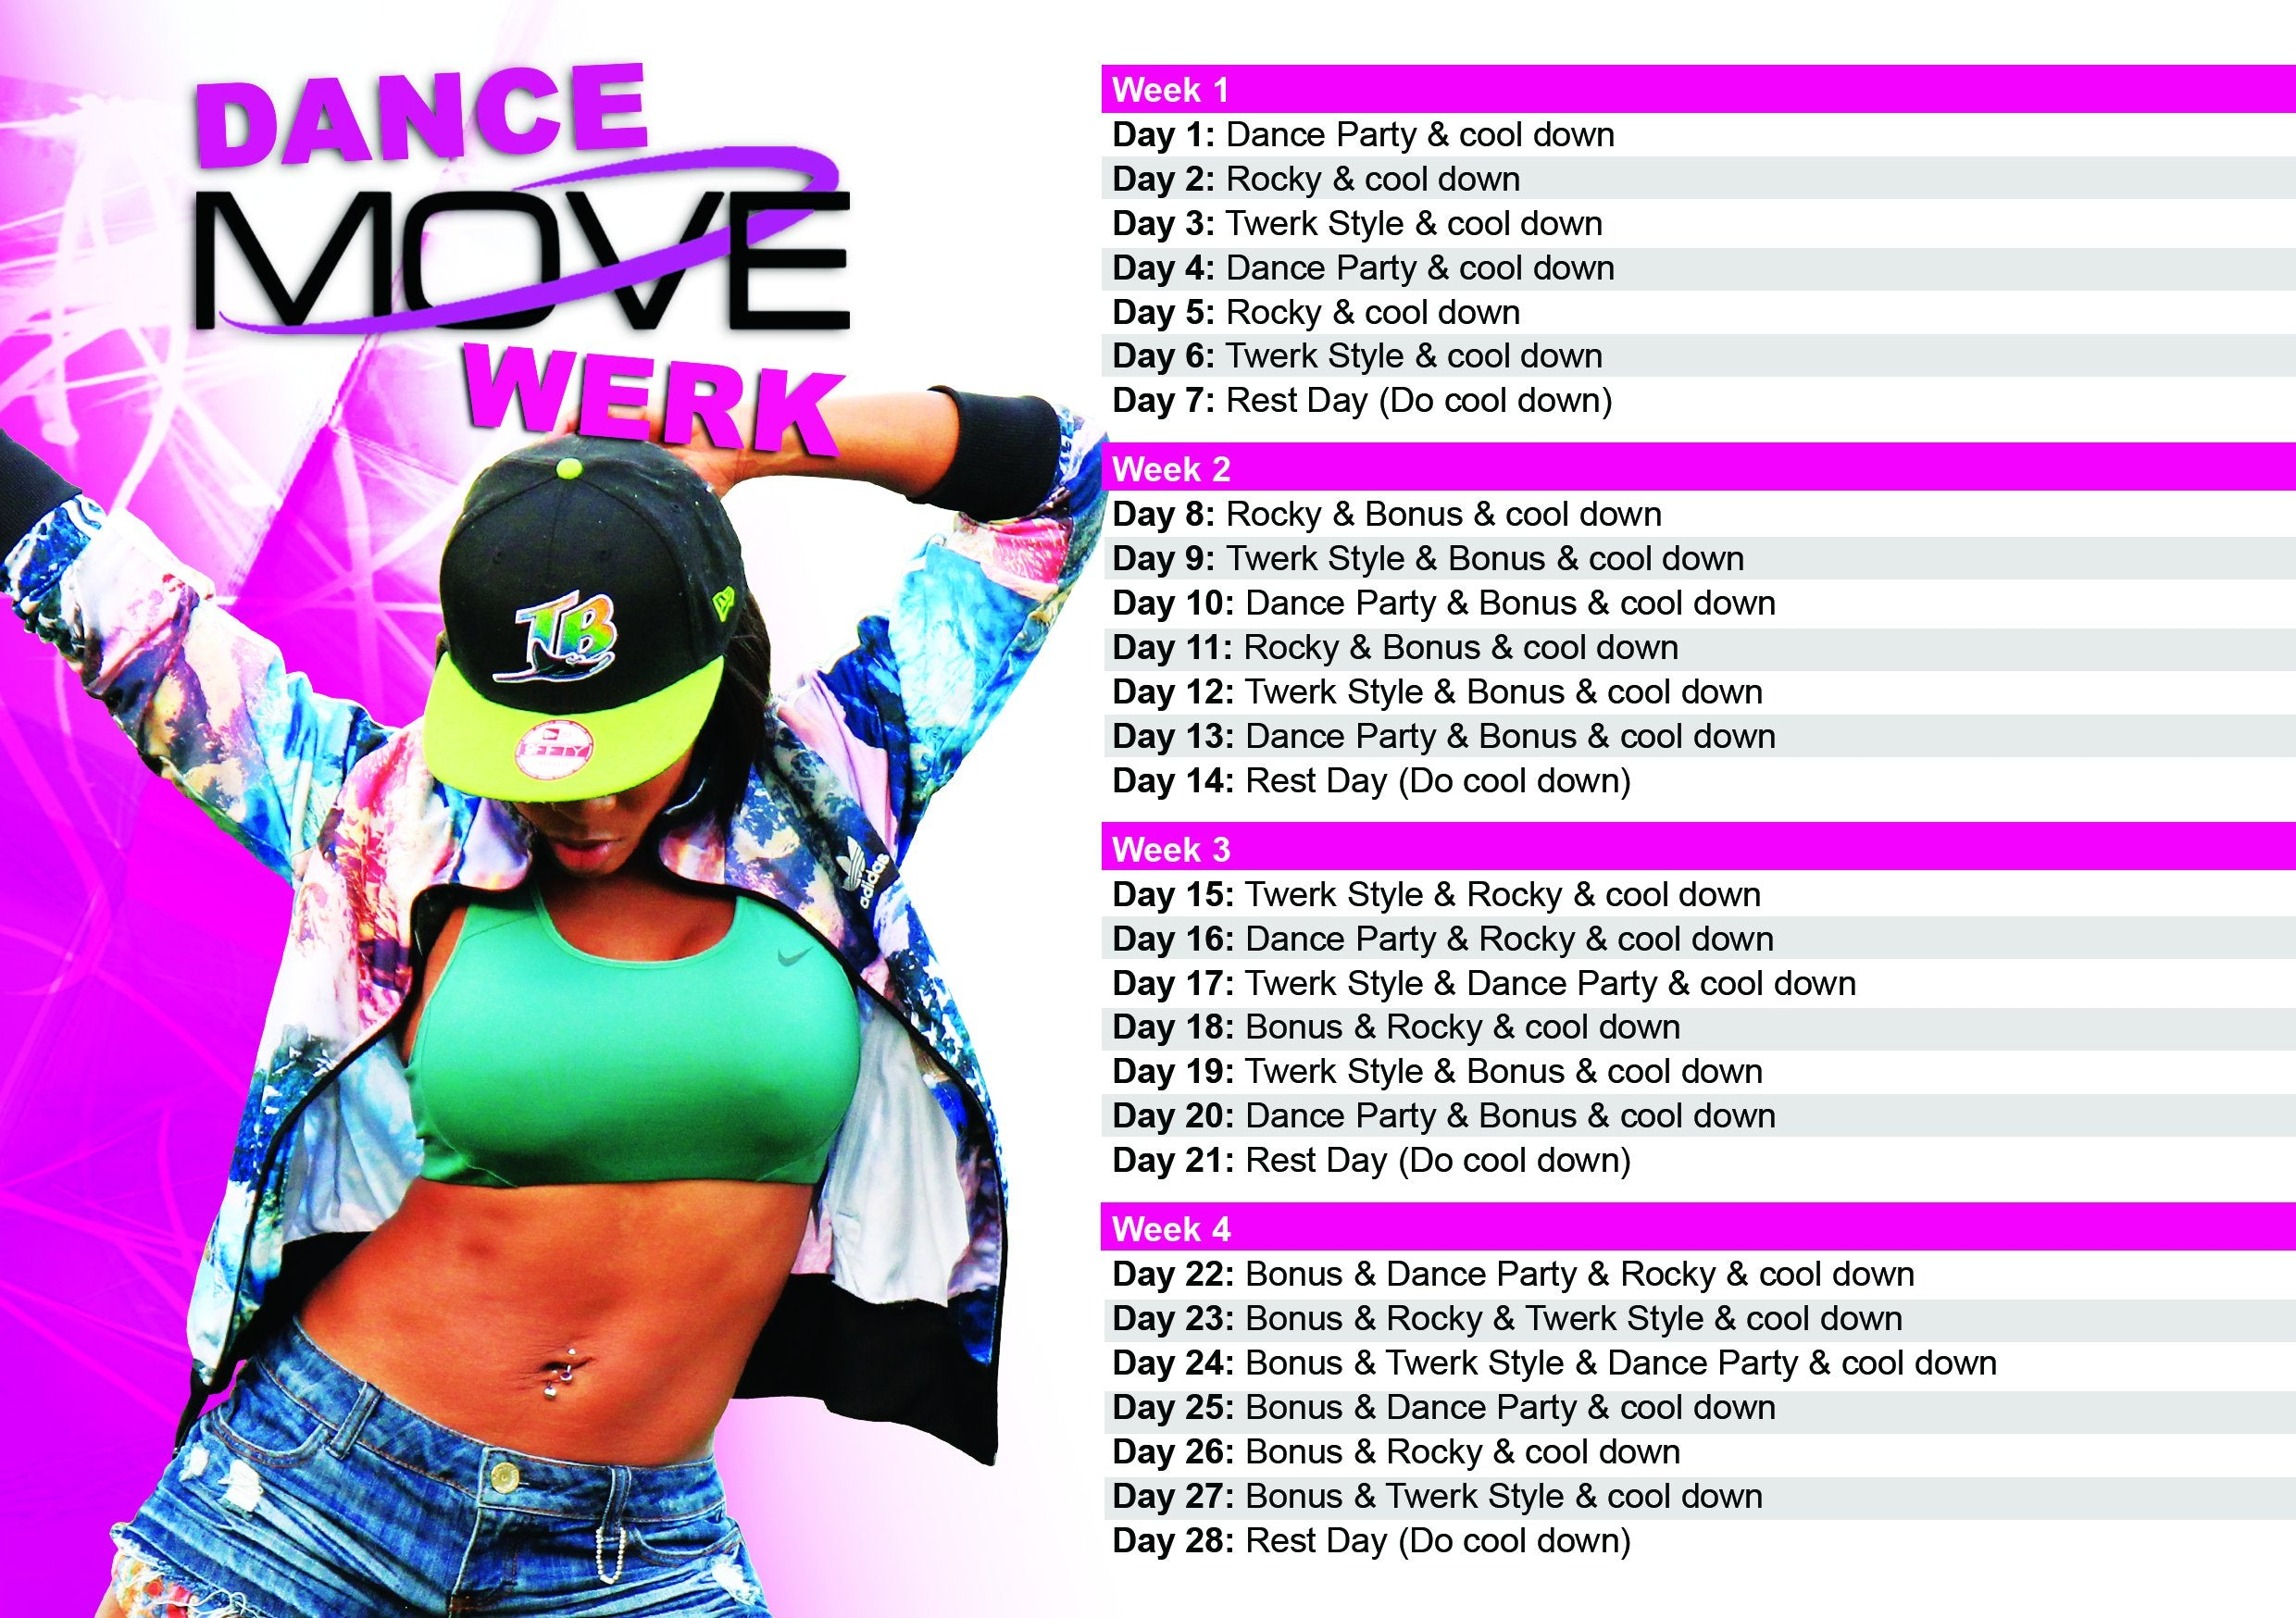 DVD- DANCE MOVE WERK Fitness